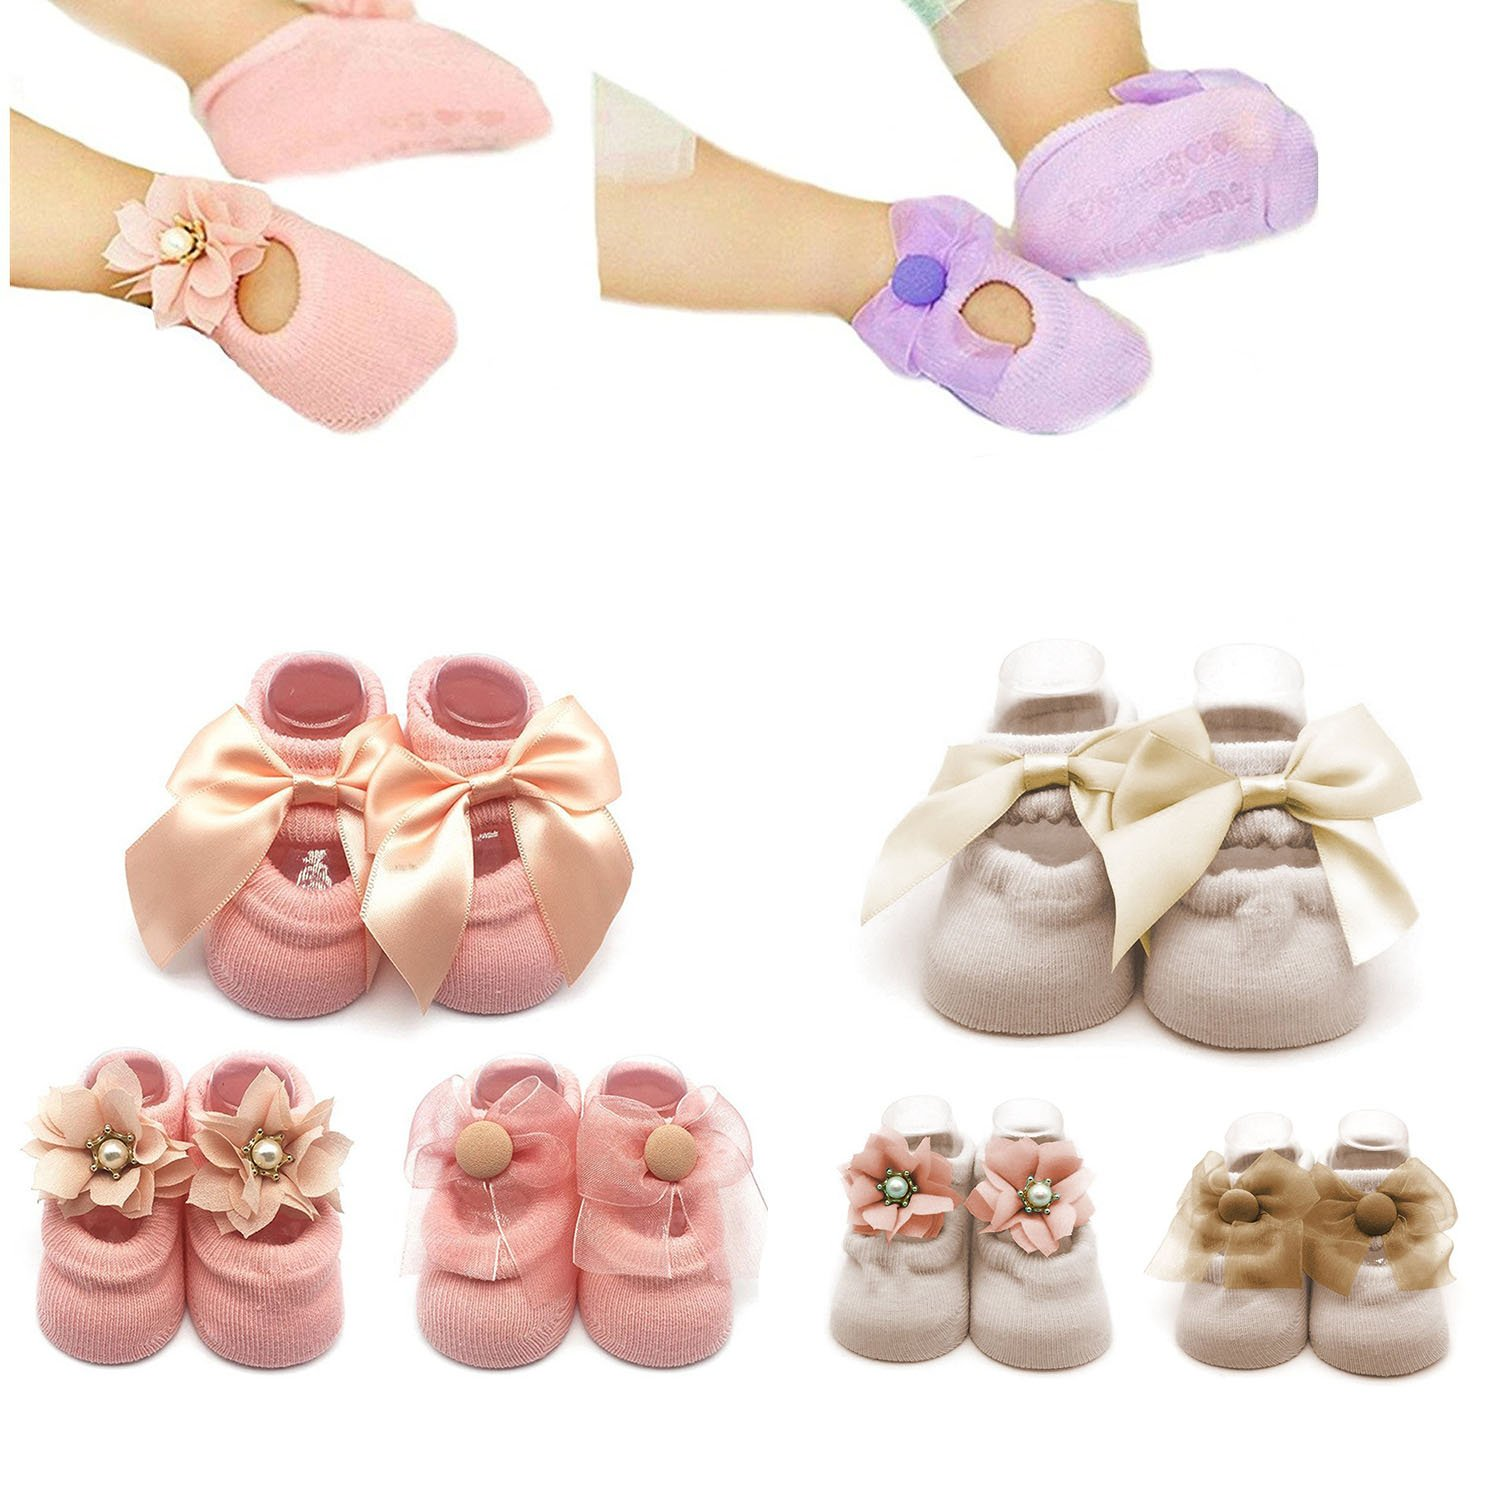 6Pairs Non-skid Baby Girls Lace Jane Socks Toddler Cotton Bowknot Walker Socks